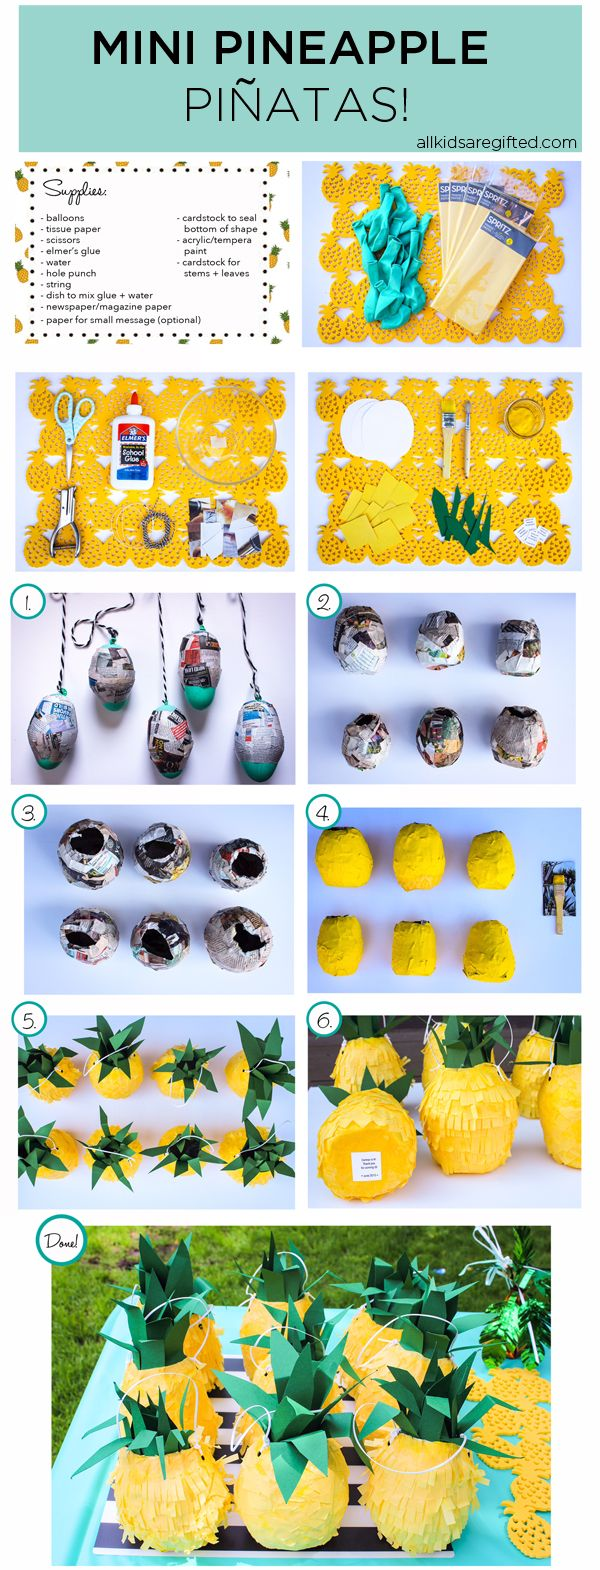 • DIY Mini Pineapple Piñatas!!! Here's a quick visual step by step I created for…